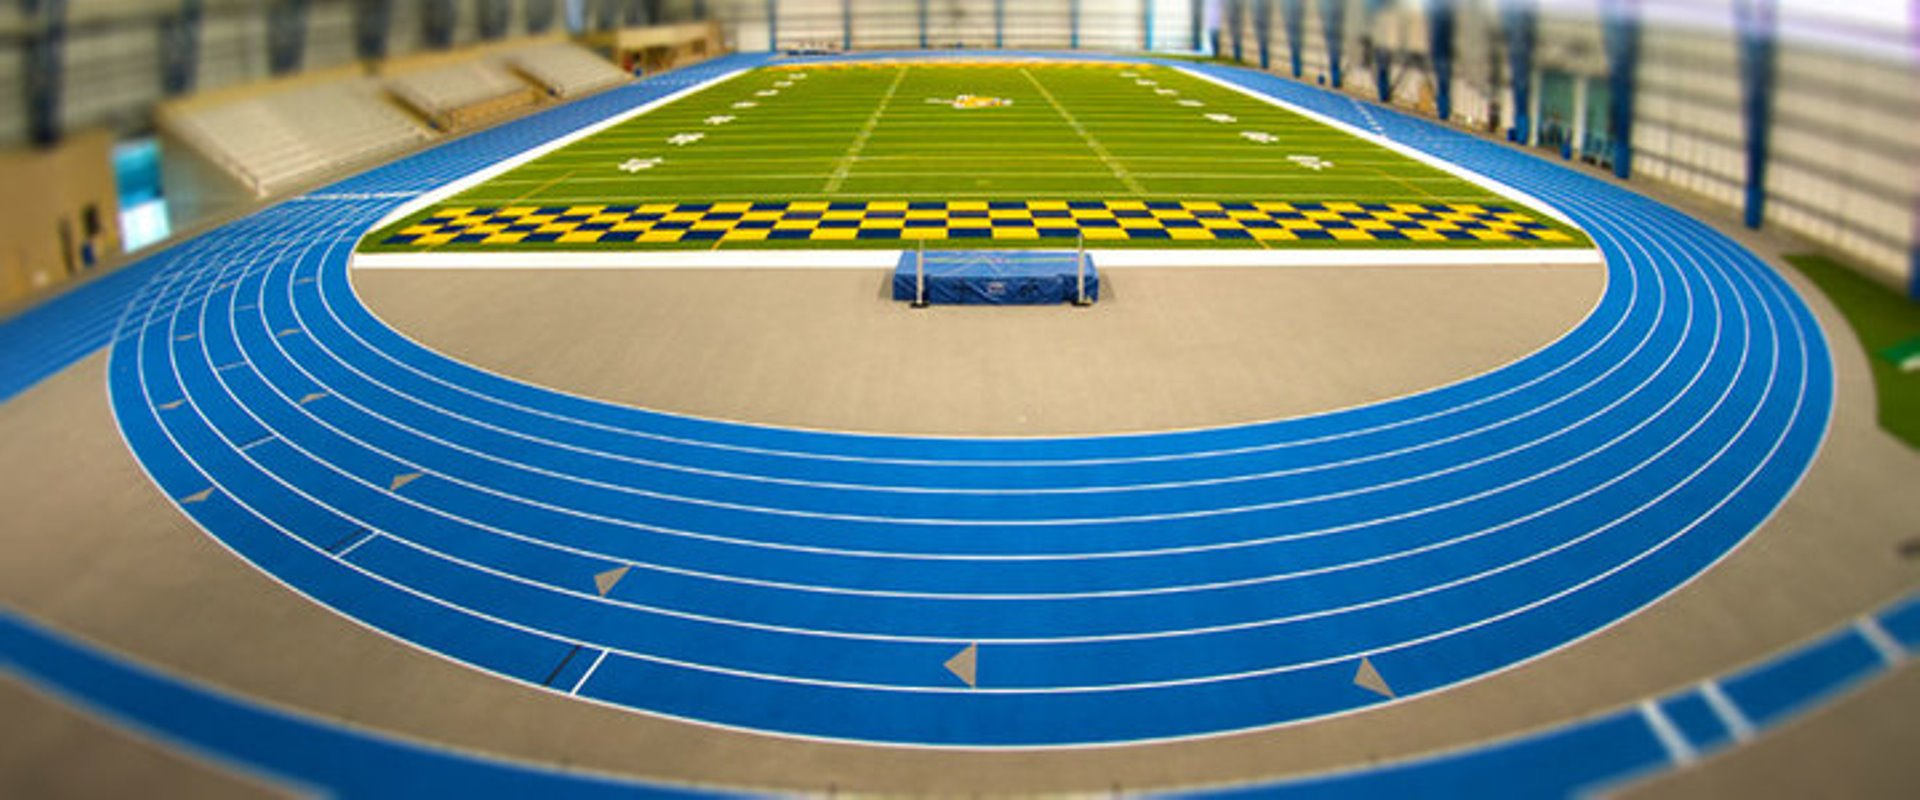 Welcome to the largest indoor track facility in the NCAA ...